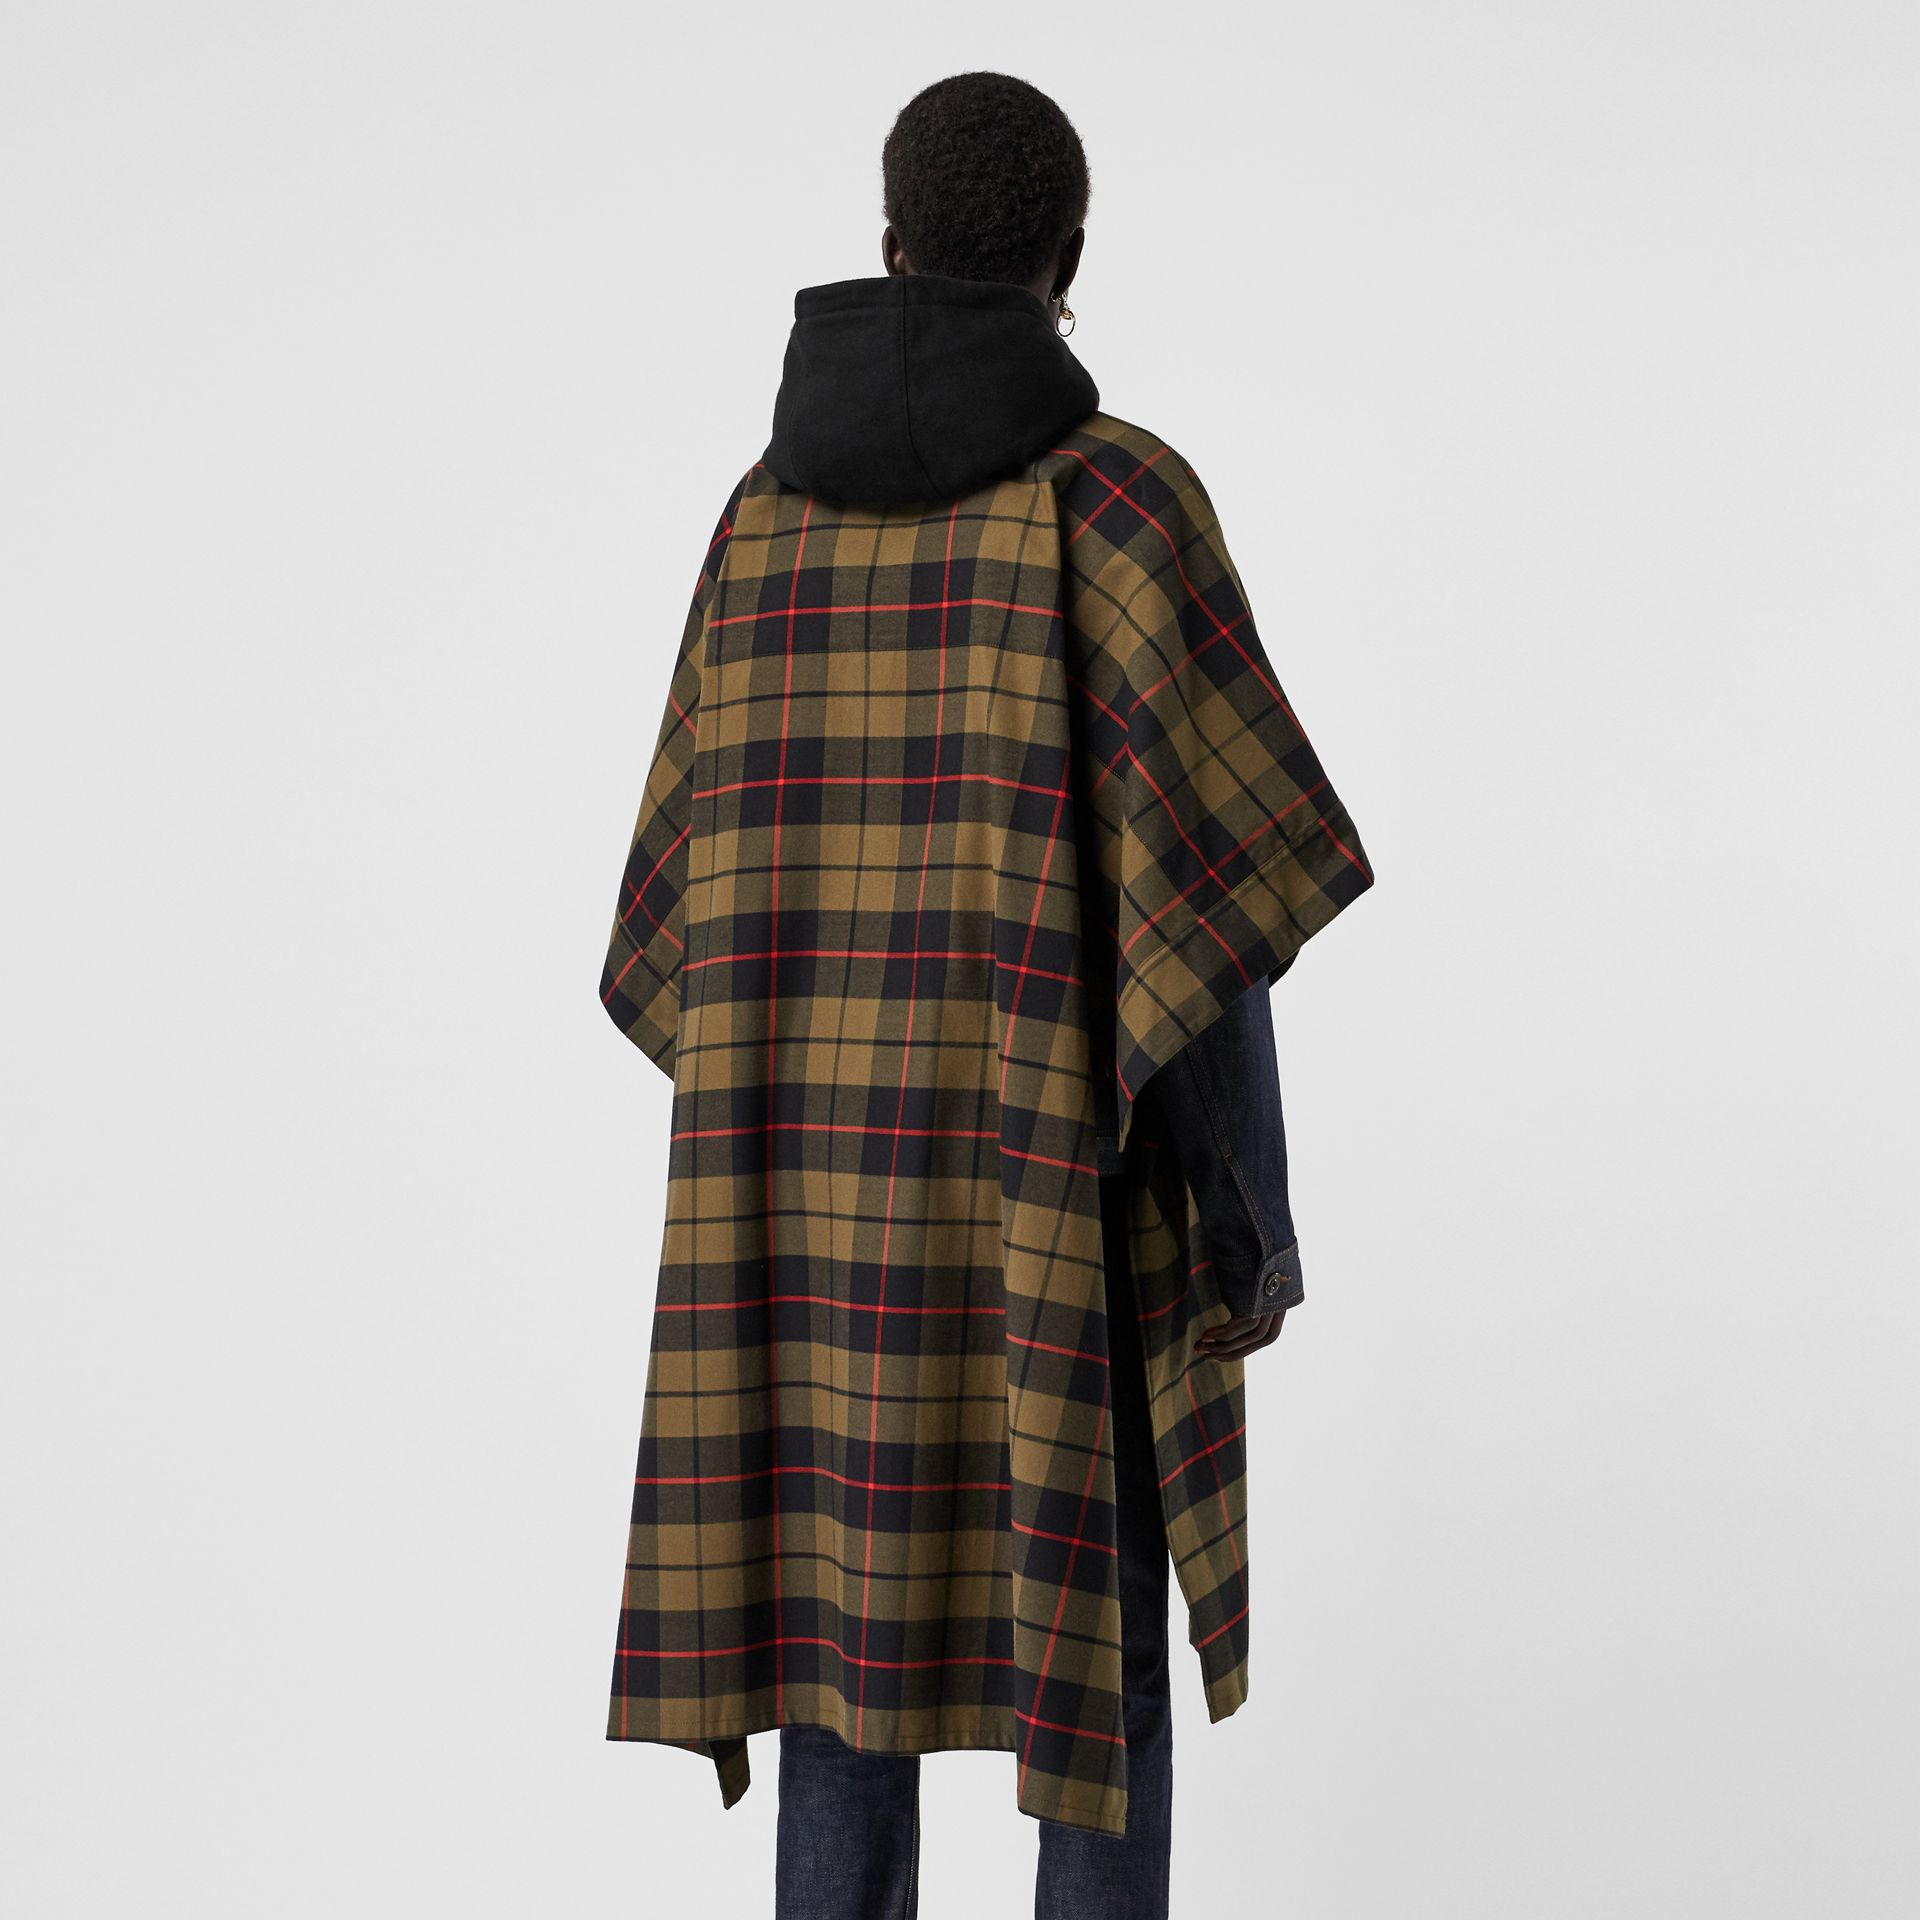 Monogram Motif Check Cotton Oversized Poncho in Military Olive | Burberry Canada - gallery image 6